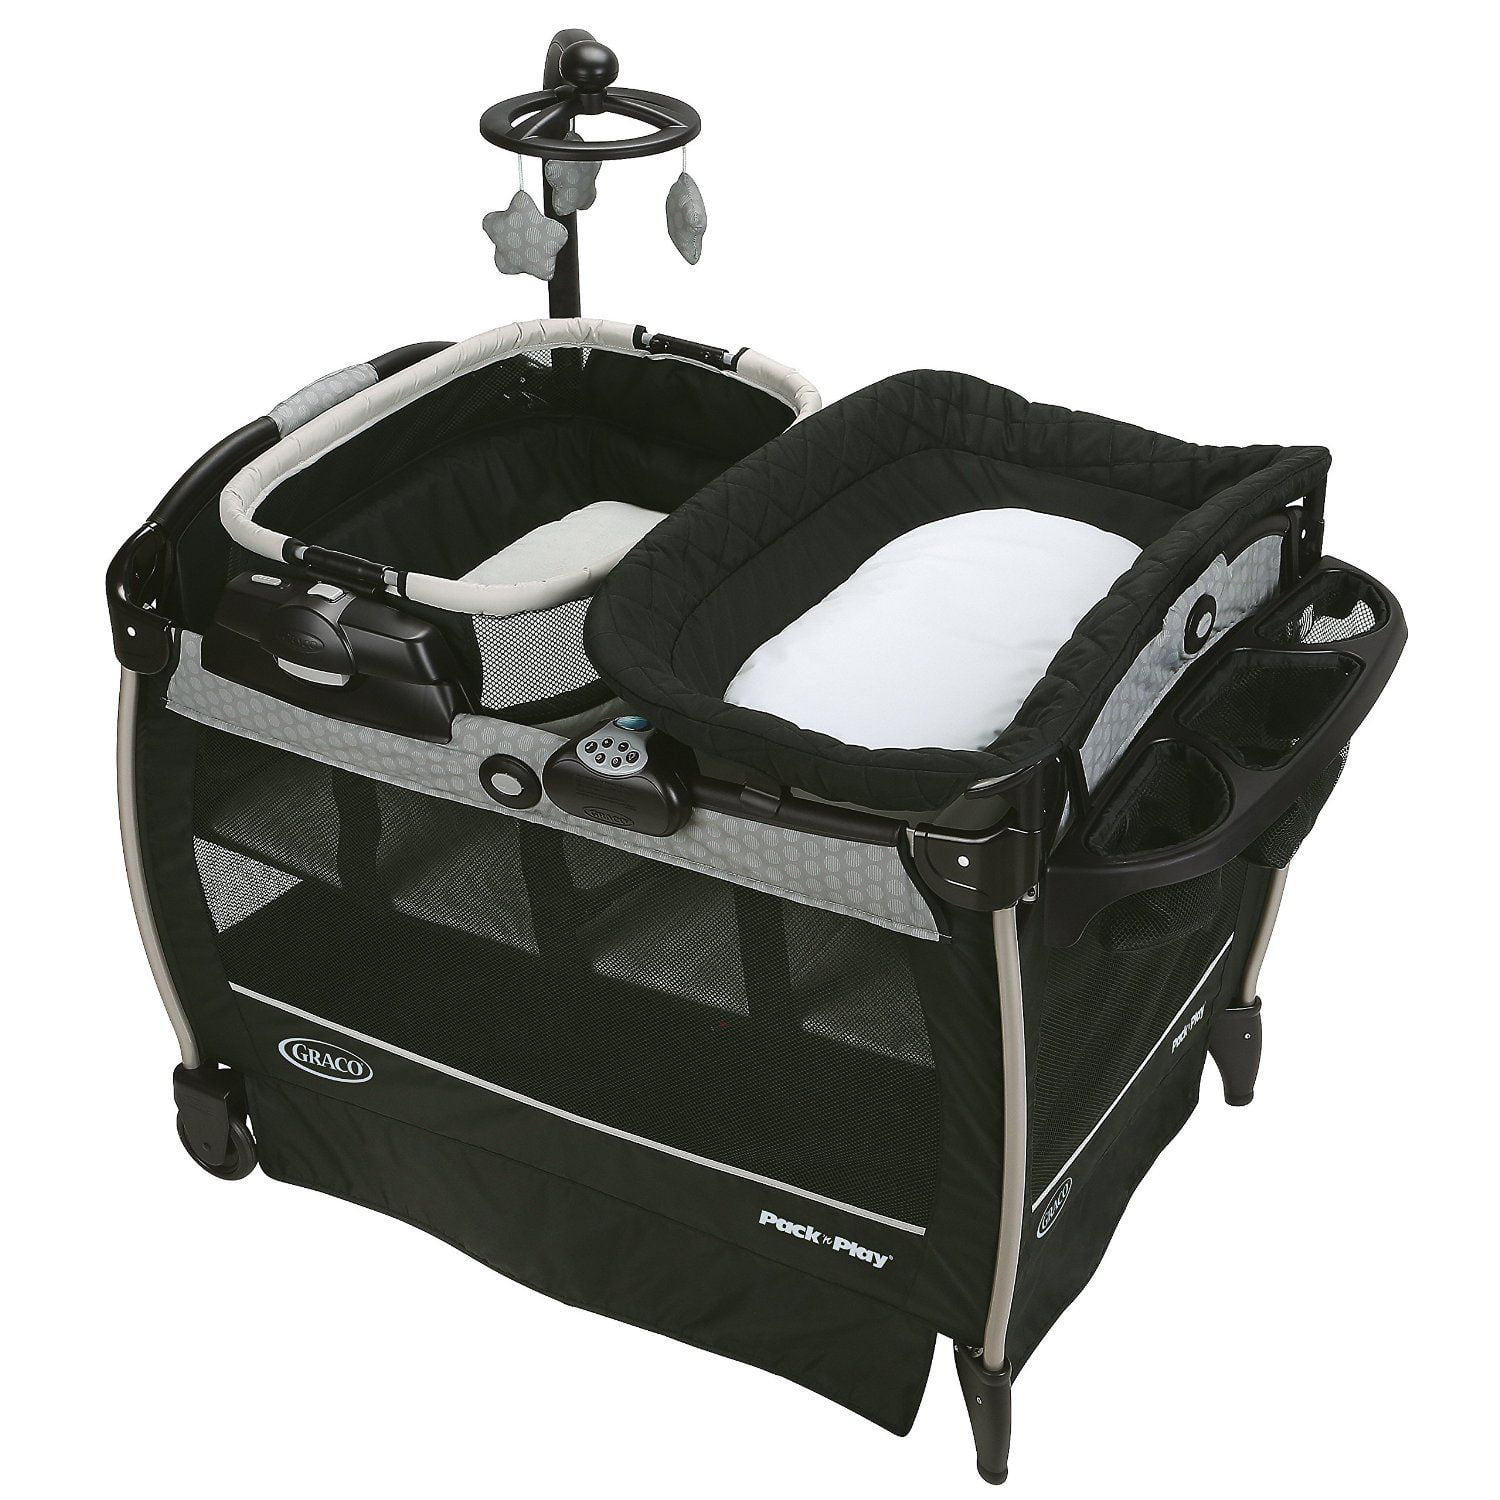 Graco Pack 'n Play Neaby Napper Play Pen with Rocker, Davis by Graco